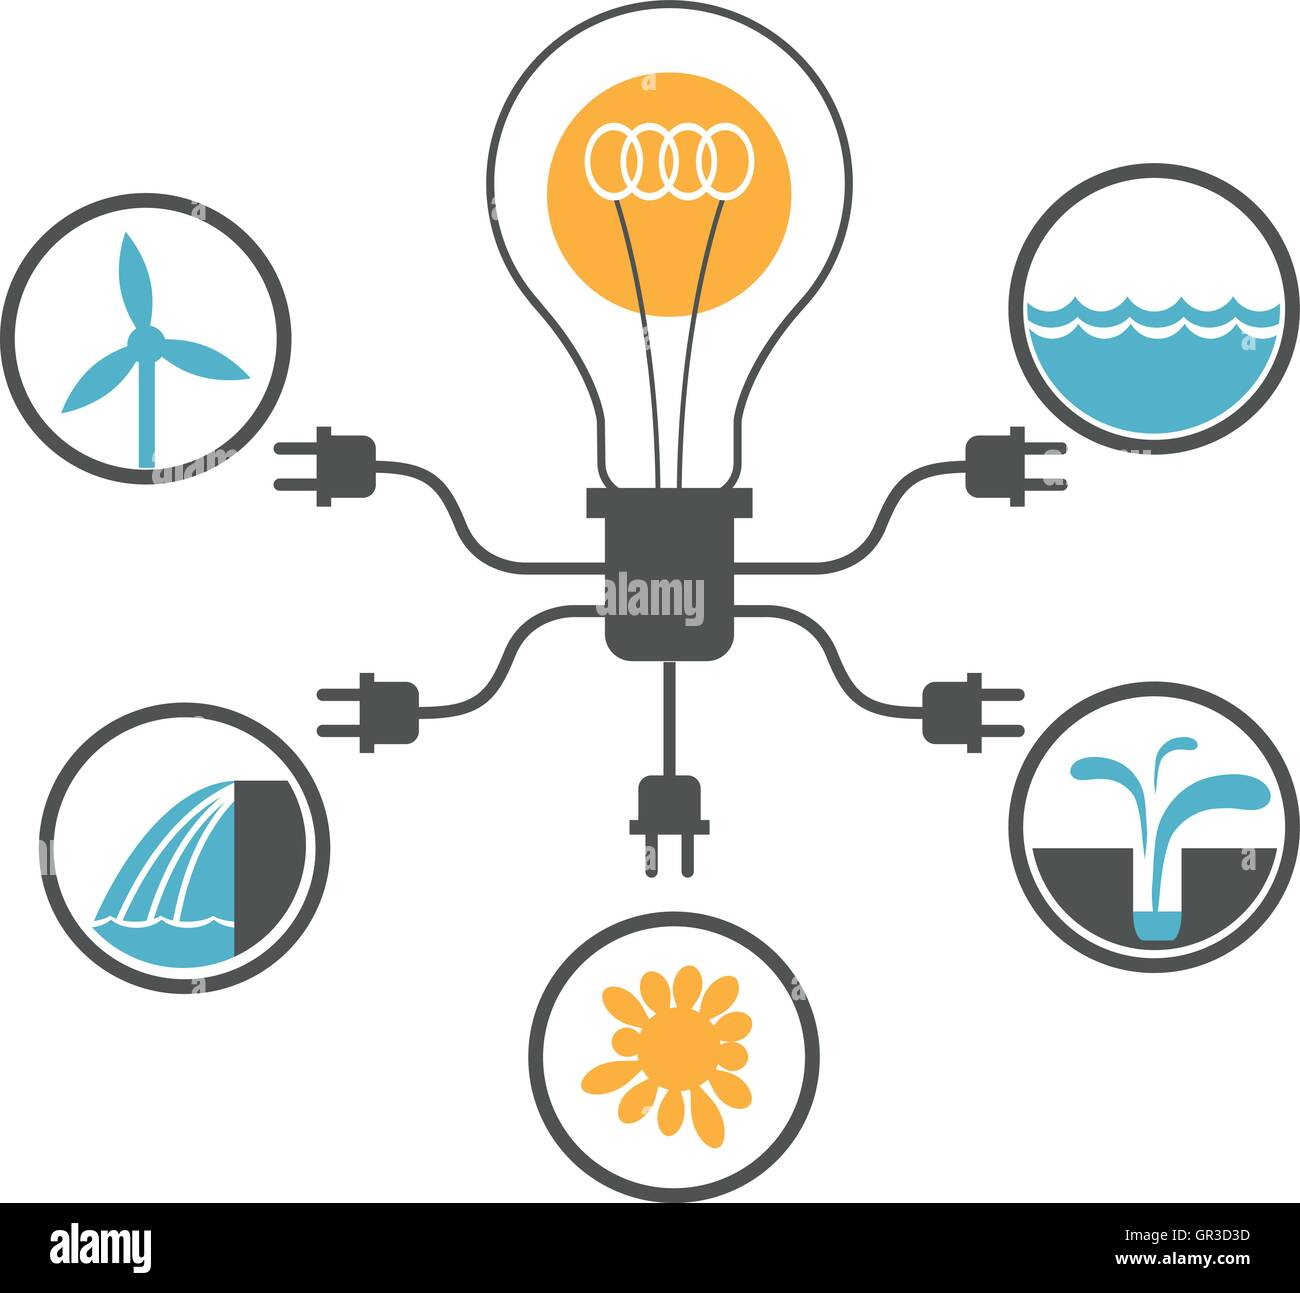 Light bulb connected to eco safe energy sources: sun, surf, wind, geothermal and hydro power - Stock Image